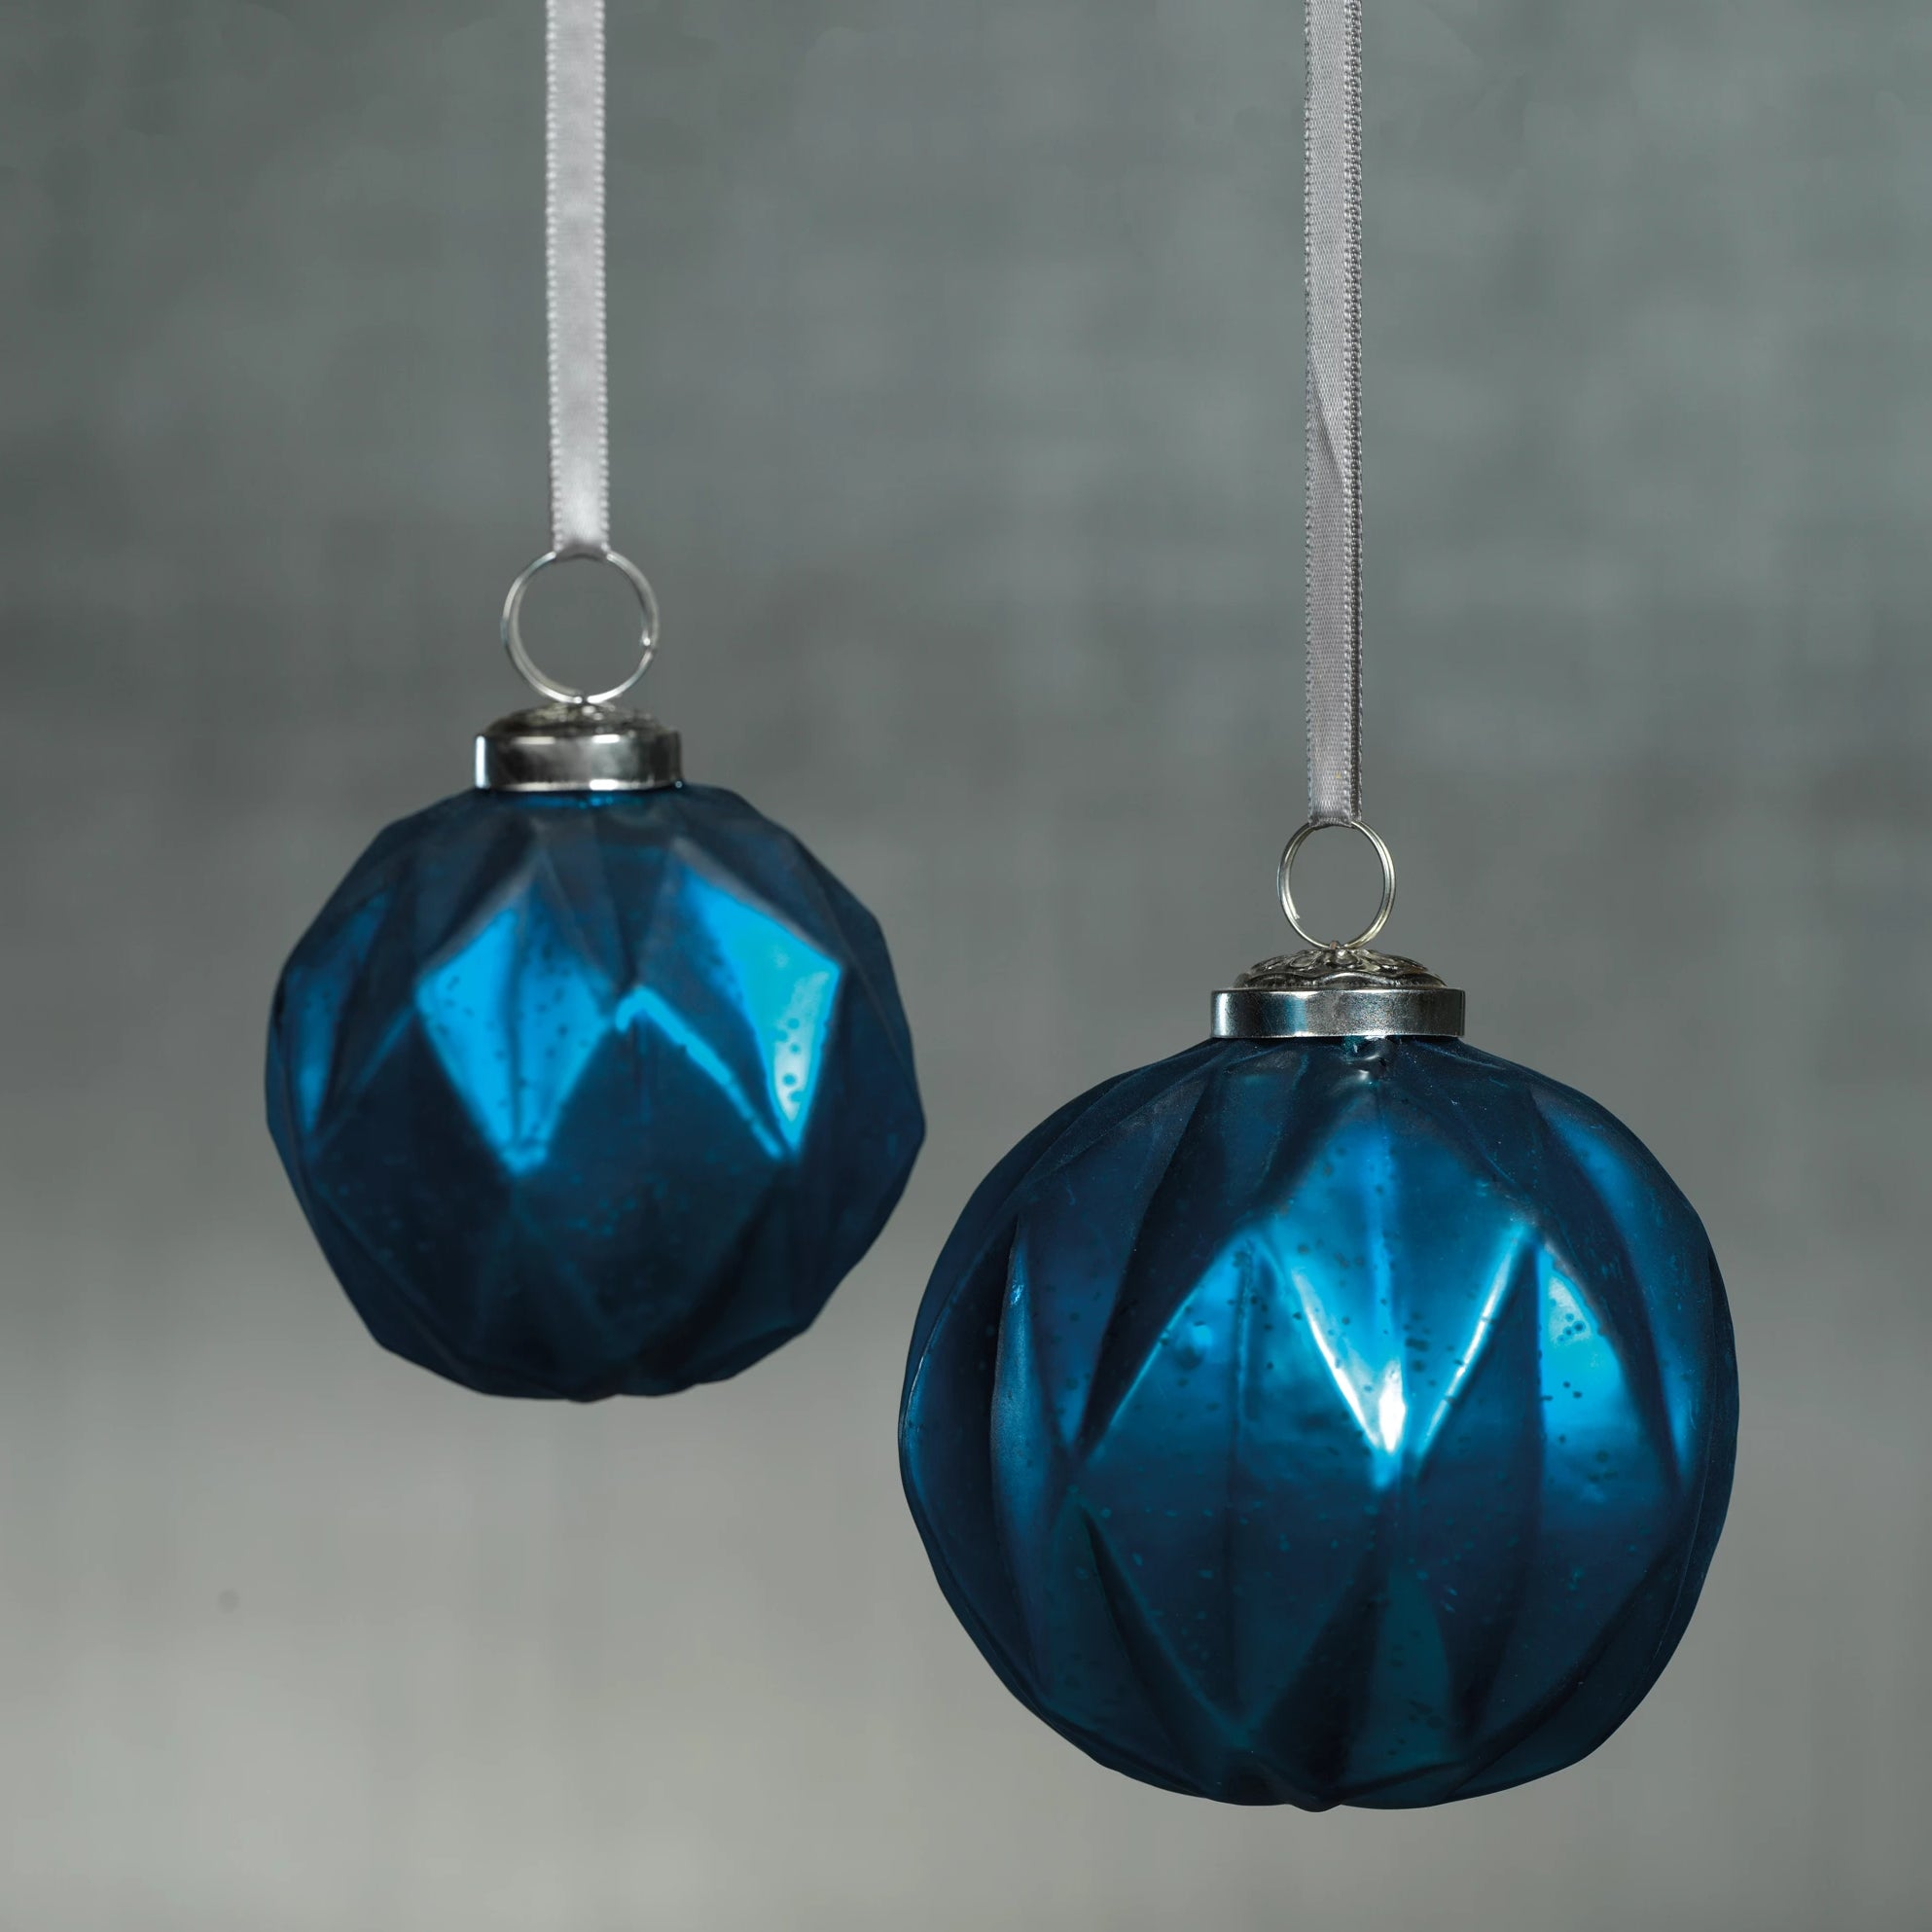 Faceted Glass Ornaments - Midnight Blue